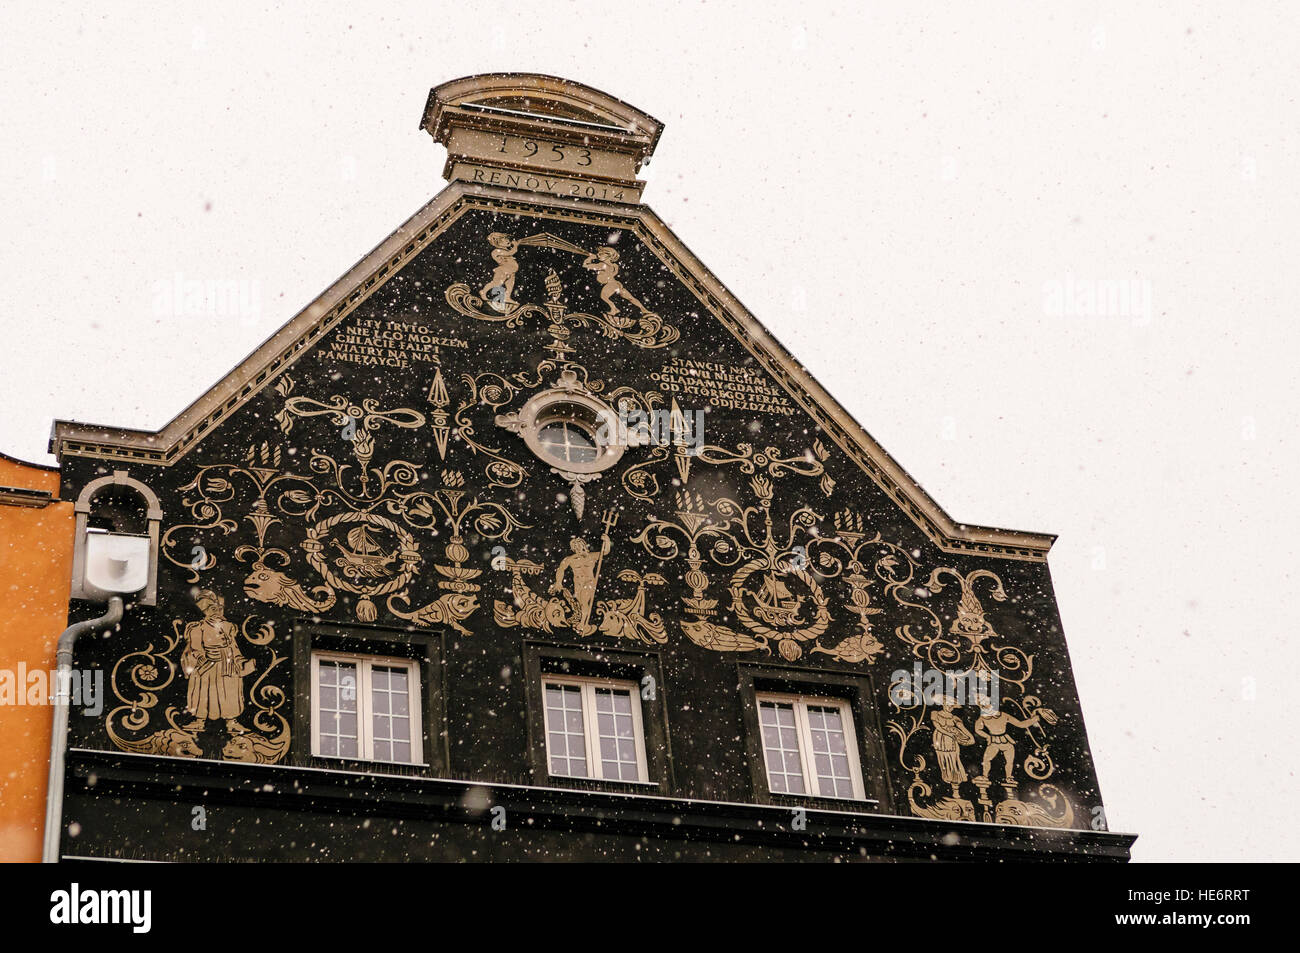 Ornately decorated spout gable wall in Dluga, Dlugi Targ, Gdansk with snow - Stock Image